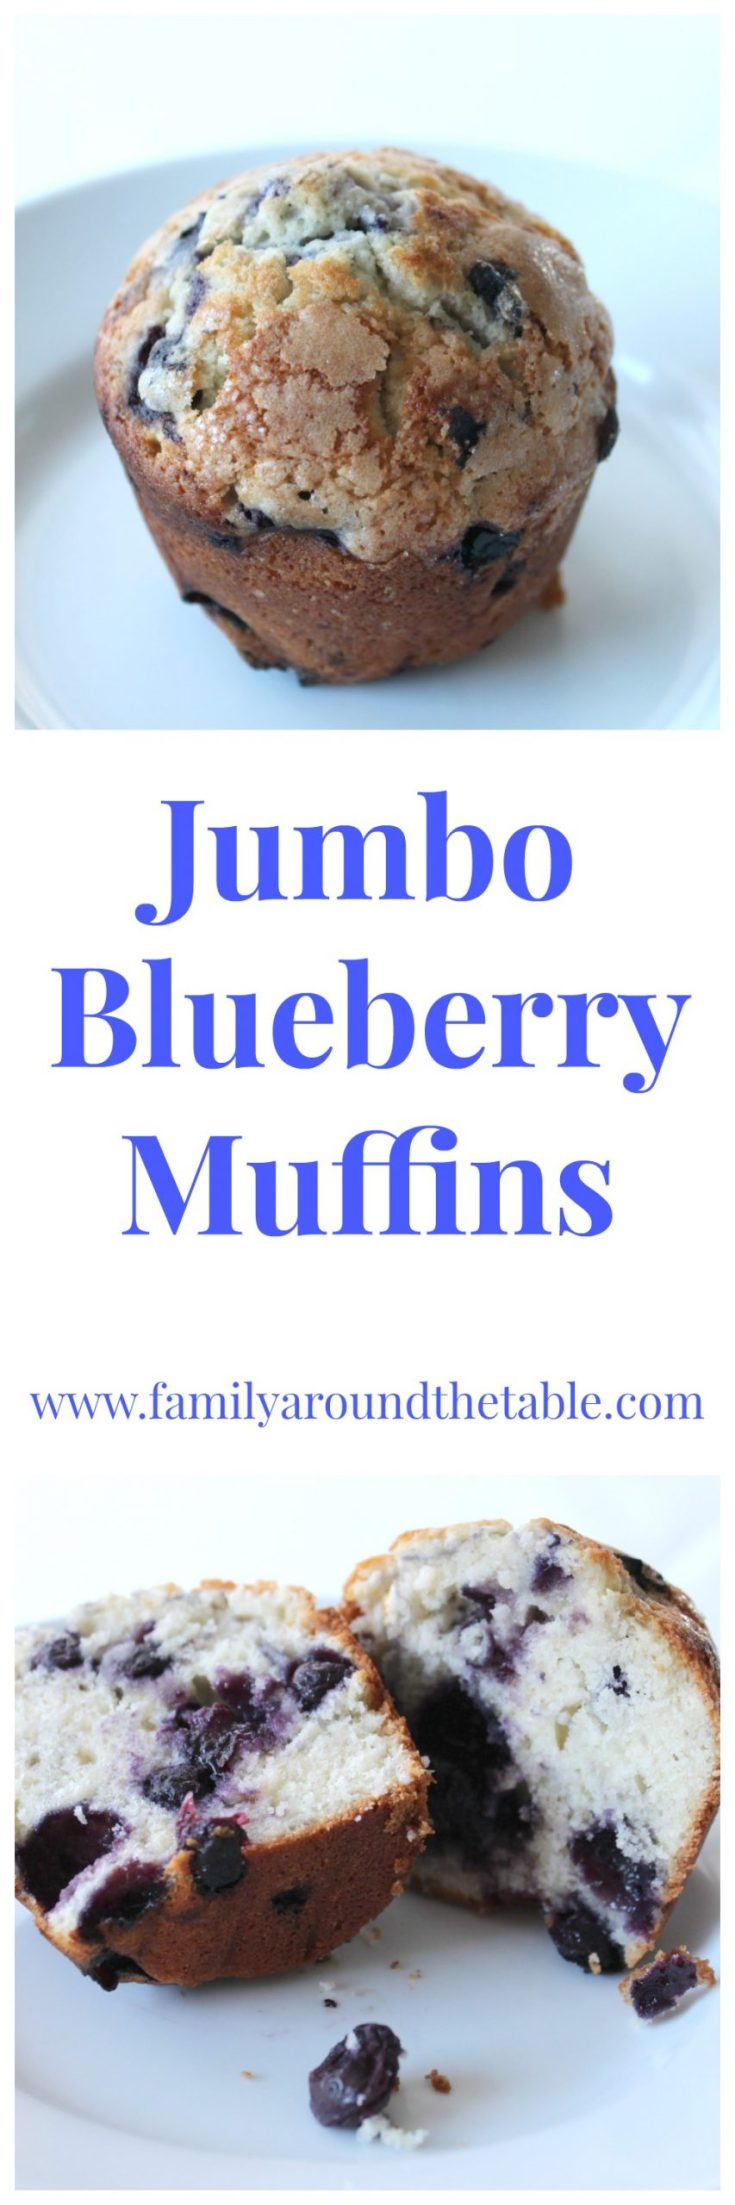 Jam packed full of blueberries these jumbo blueberry muffins are perfect with your morning coffee.